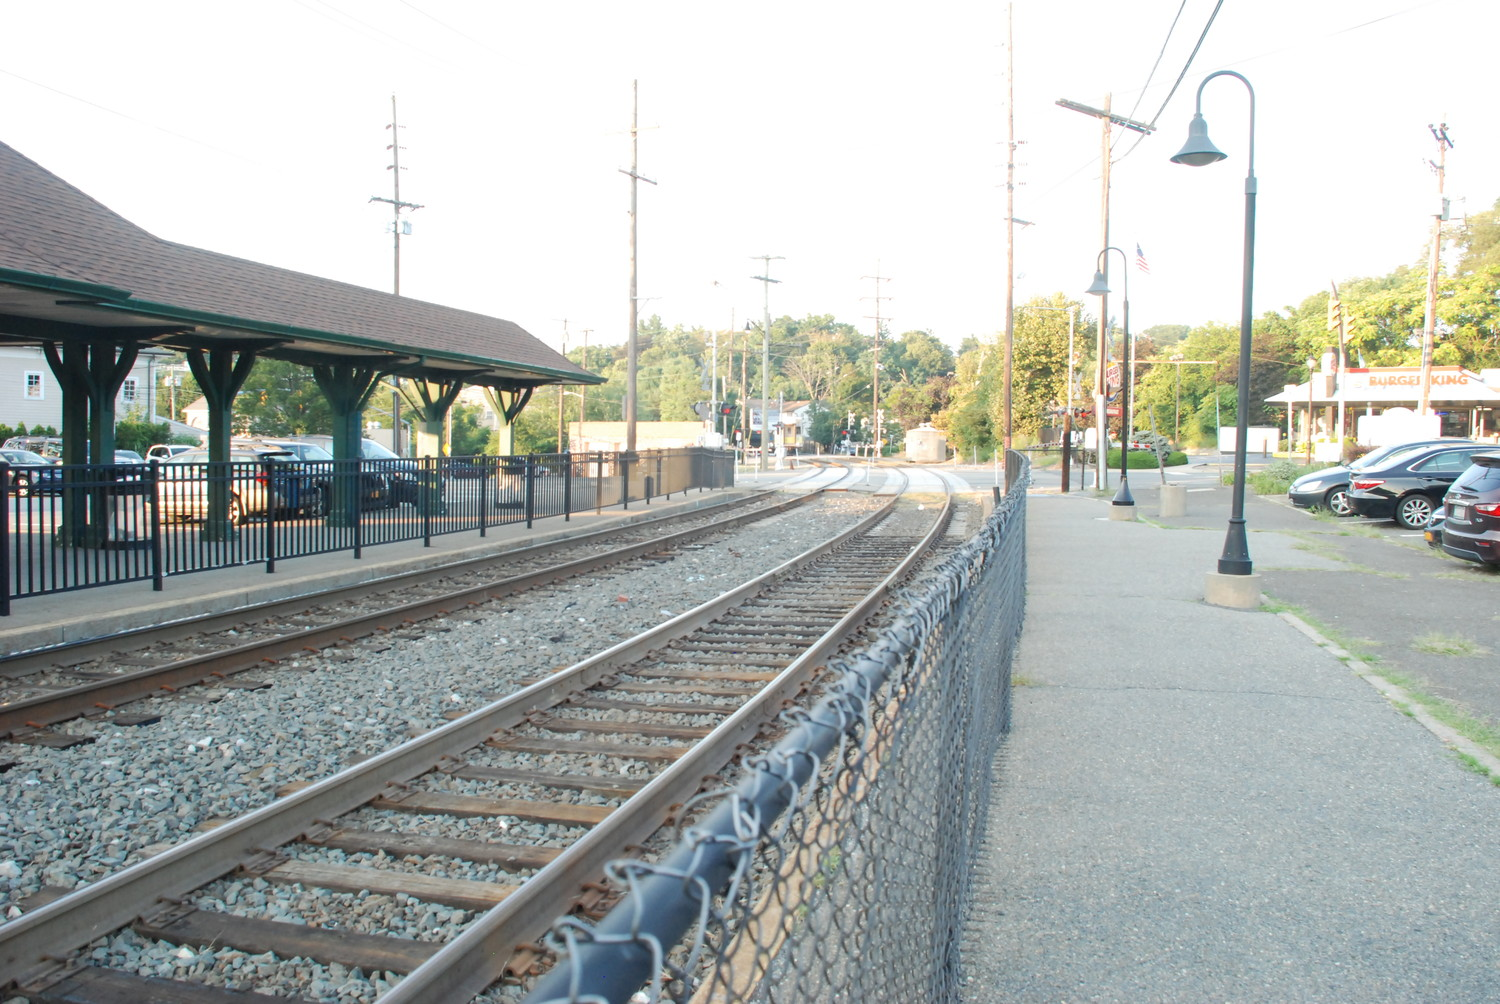 The Glen Street station of the Long Island Rail Road is located on the Oyster Bay line.